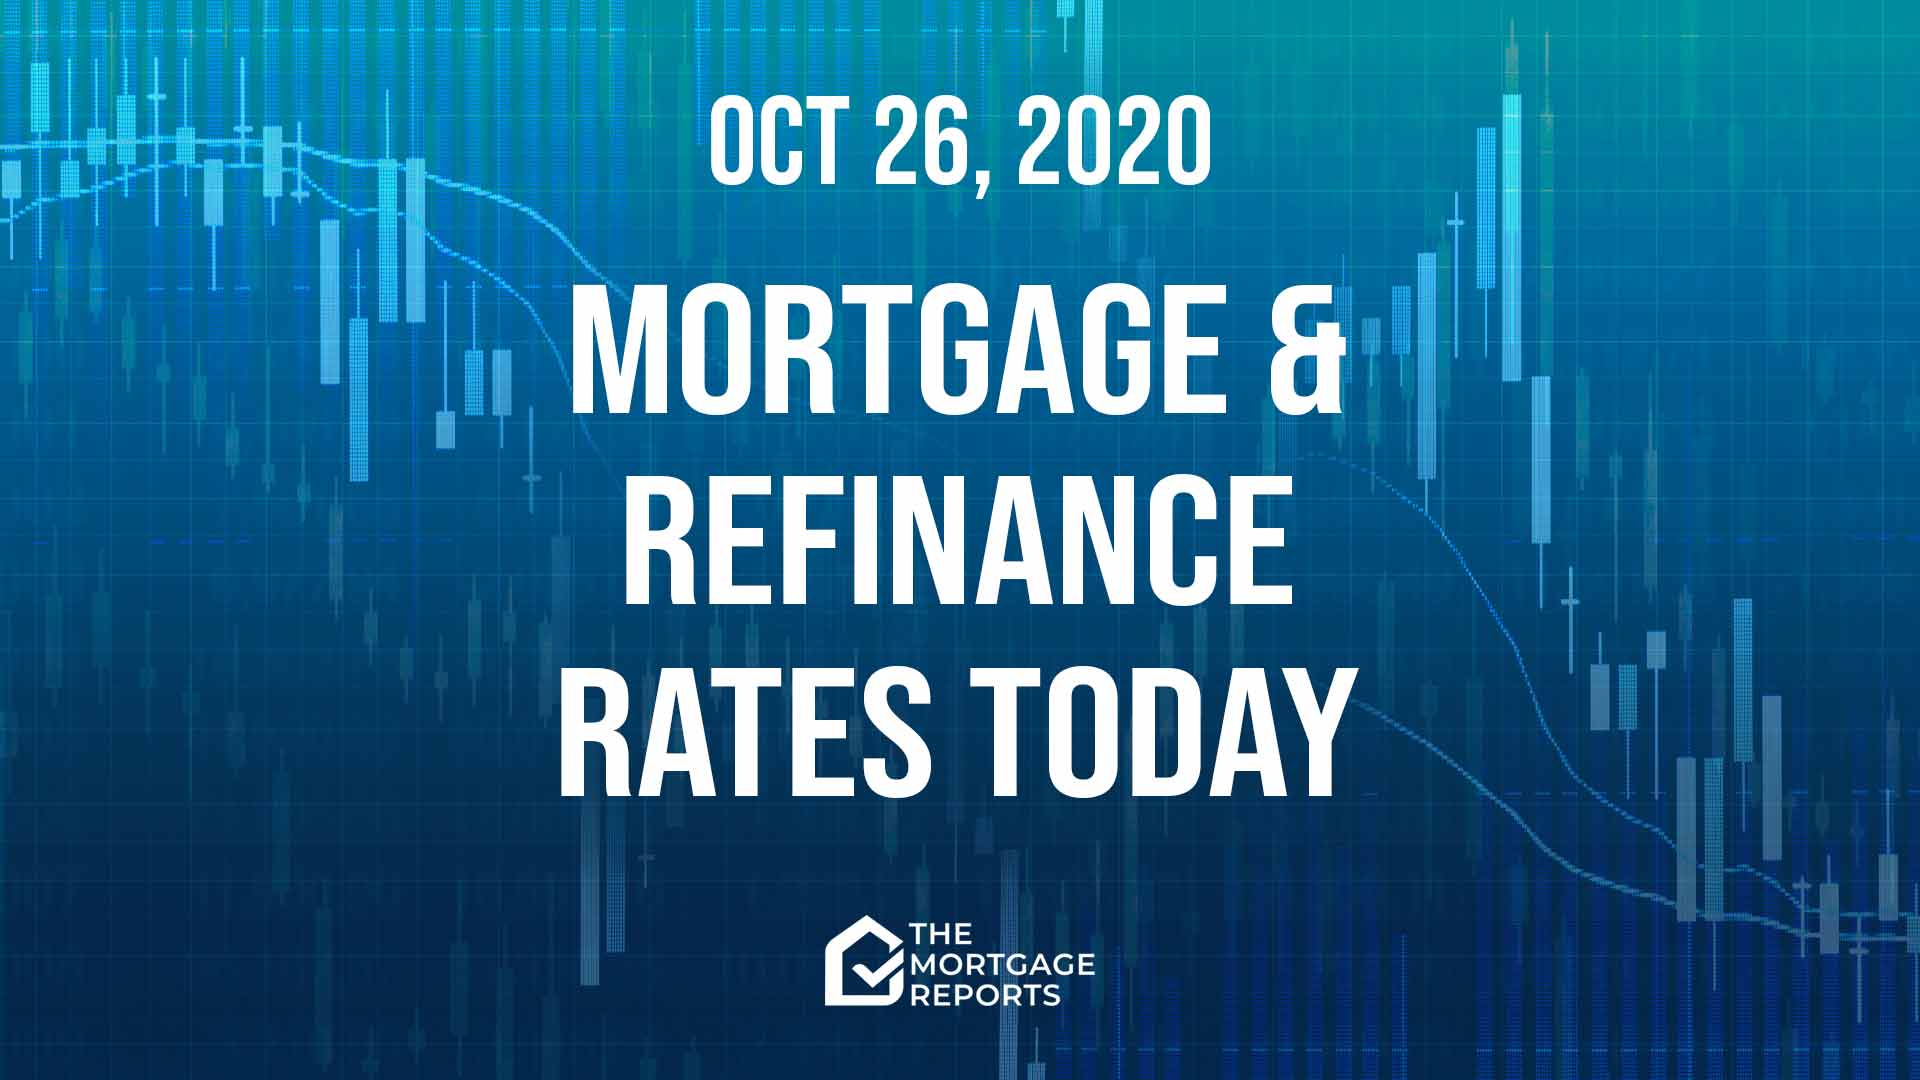 Mortgage and refinance rates today, October 26, 2020 ...